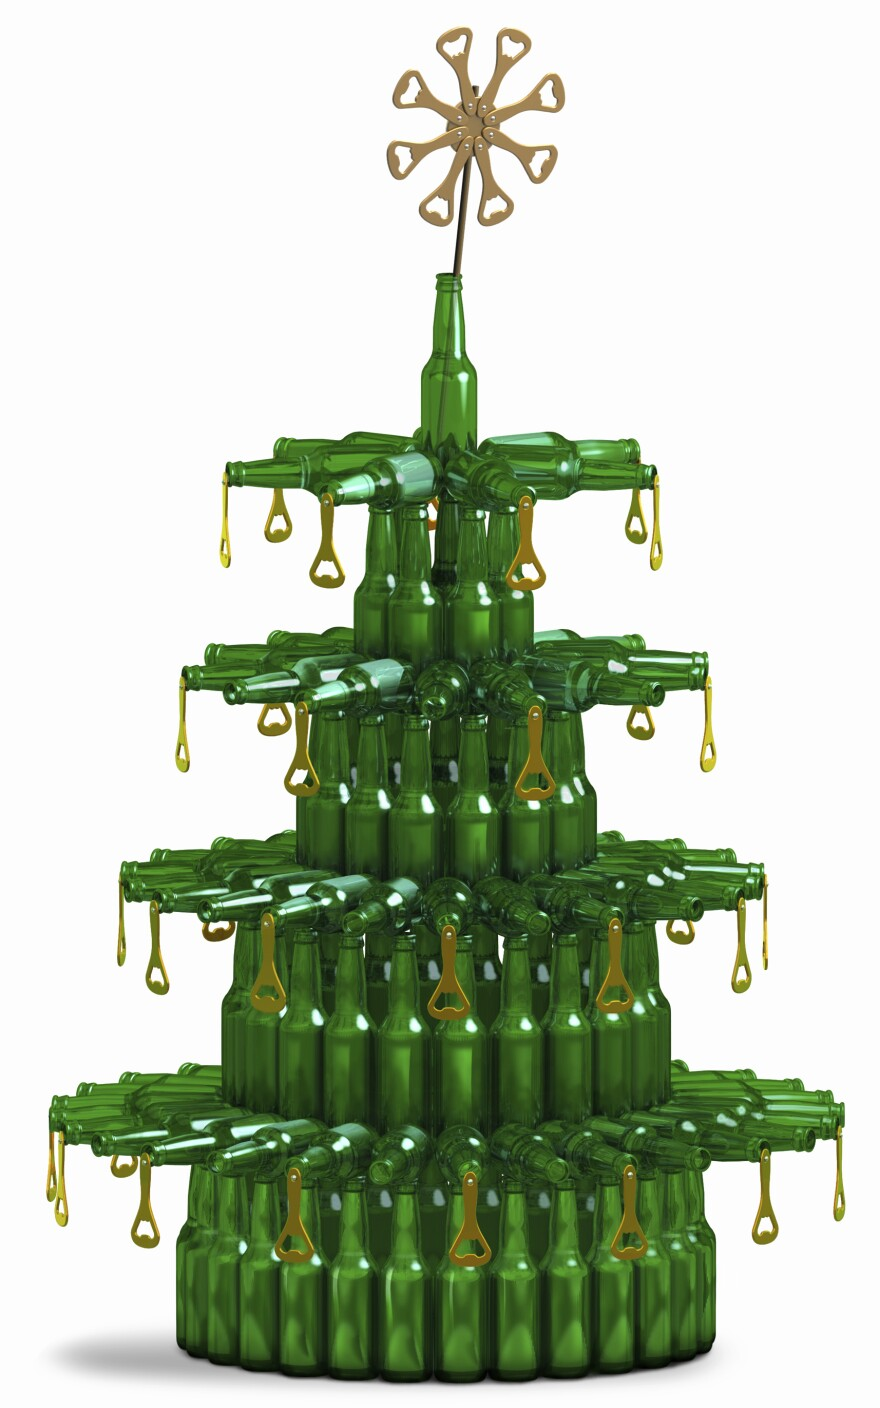 Beer bottle Christmas tree.